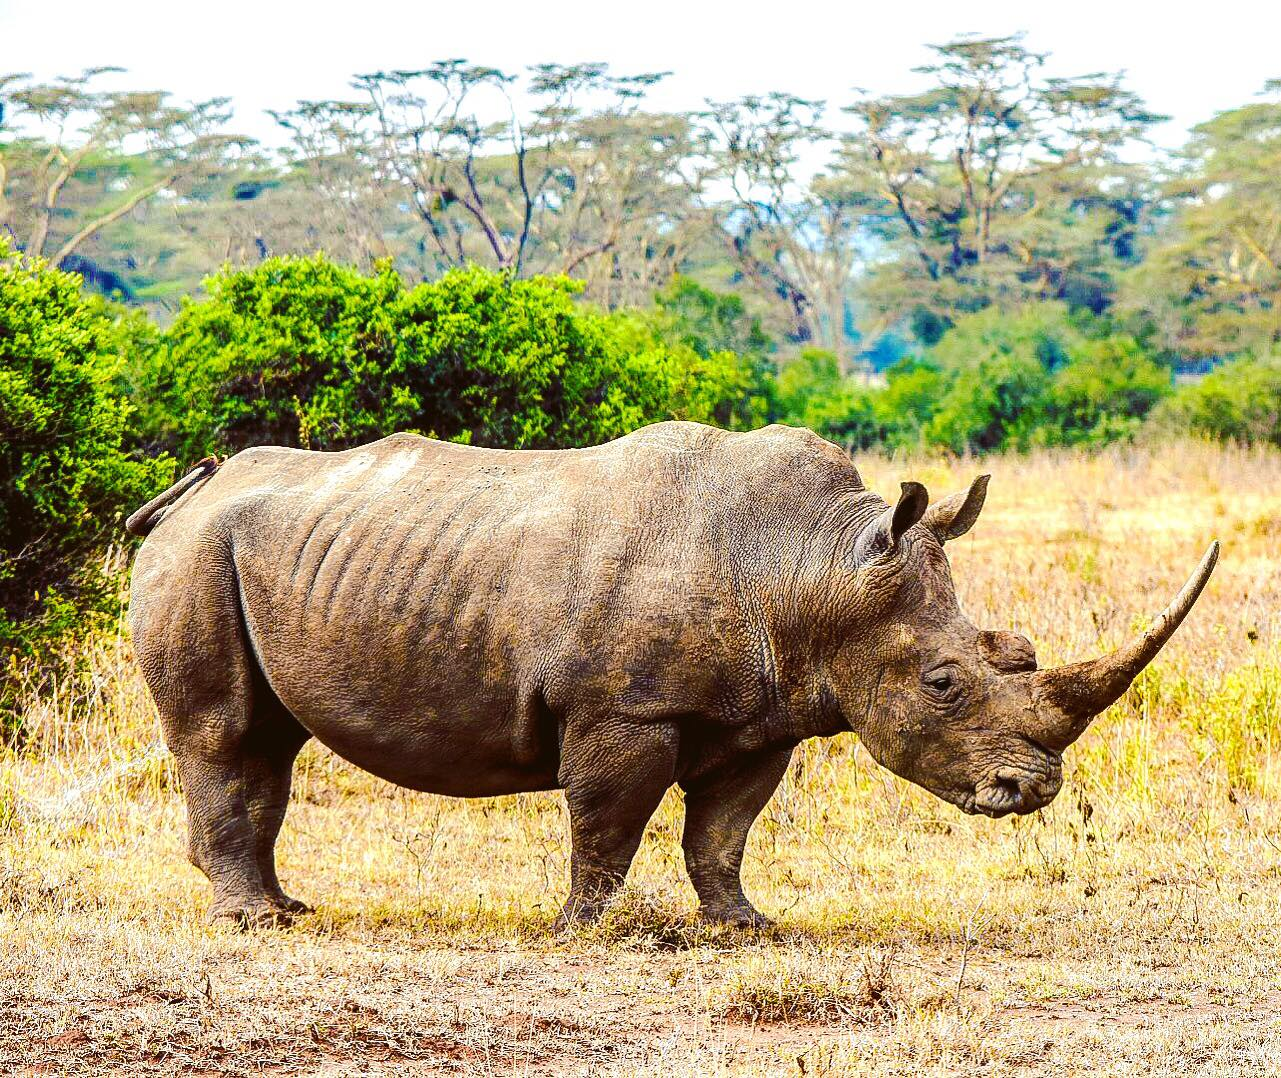 Officials seize 50 rhino horns worth $12 million from smuggling shipment